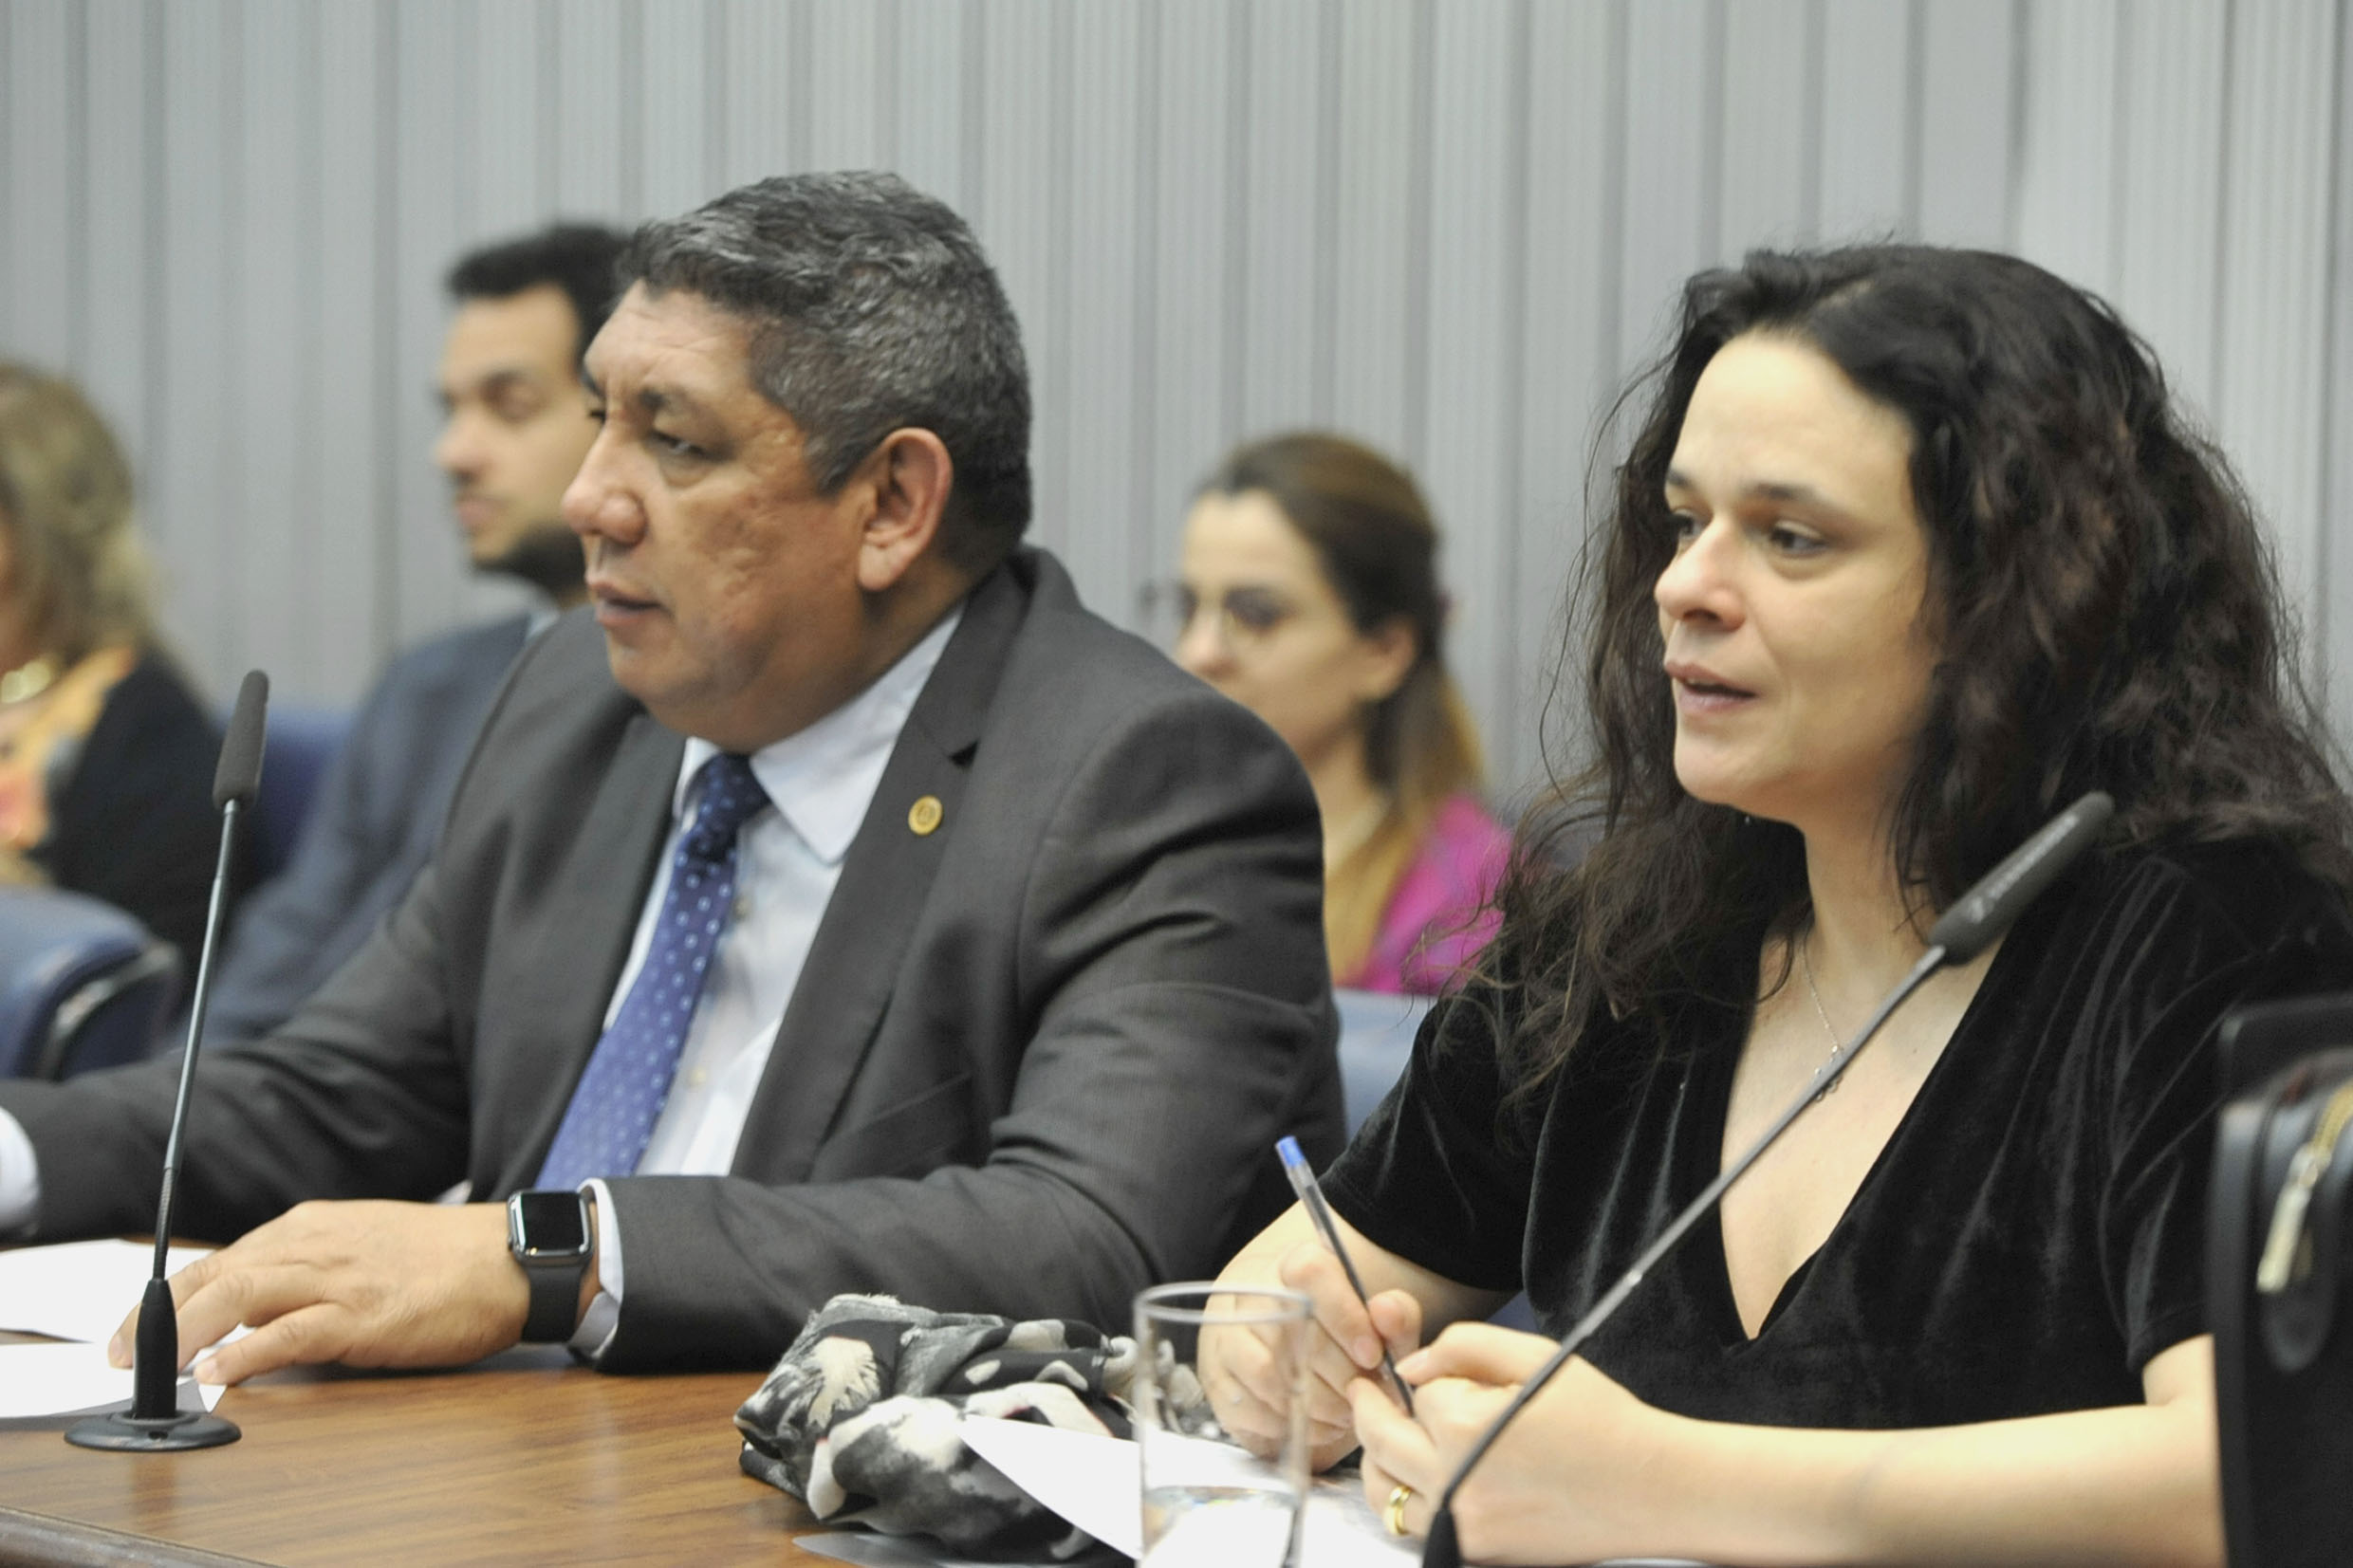 Adalberto Freitas e Janaina Paschoal<a style='float:right' href='https://www3.al.sp.gov.br/repositorio/noticia/N-10-2019/fg241539.jpg' target=_blank><img src='/_img/material-file-download-white.png' width='14px' alt='Clique para baixar a imagem'></a>